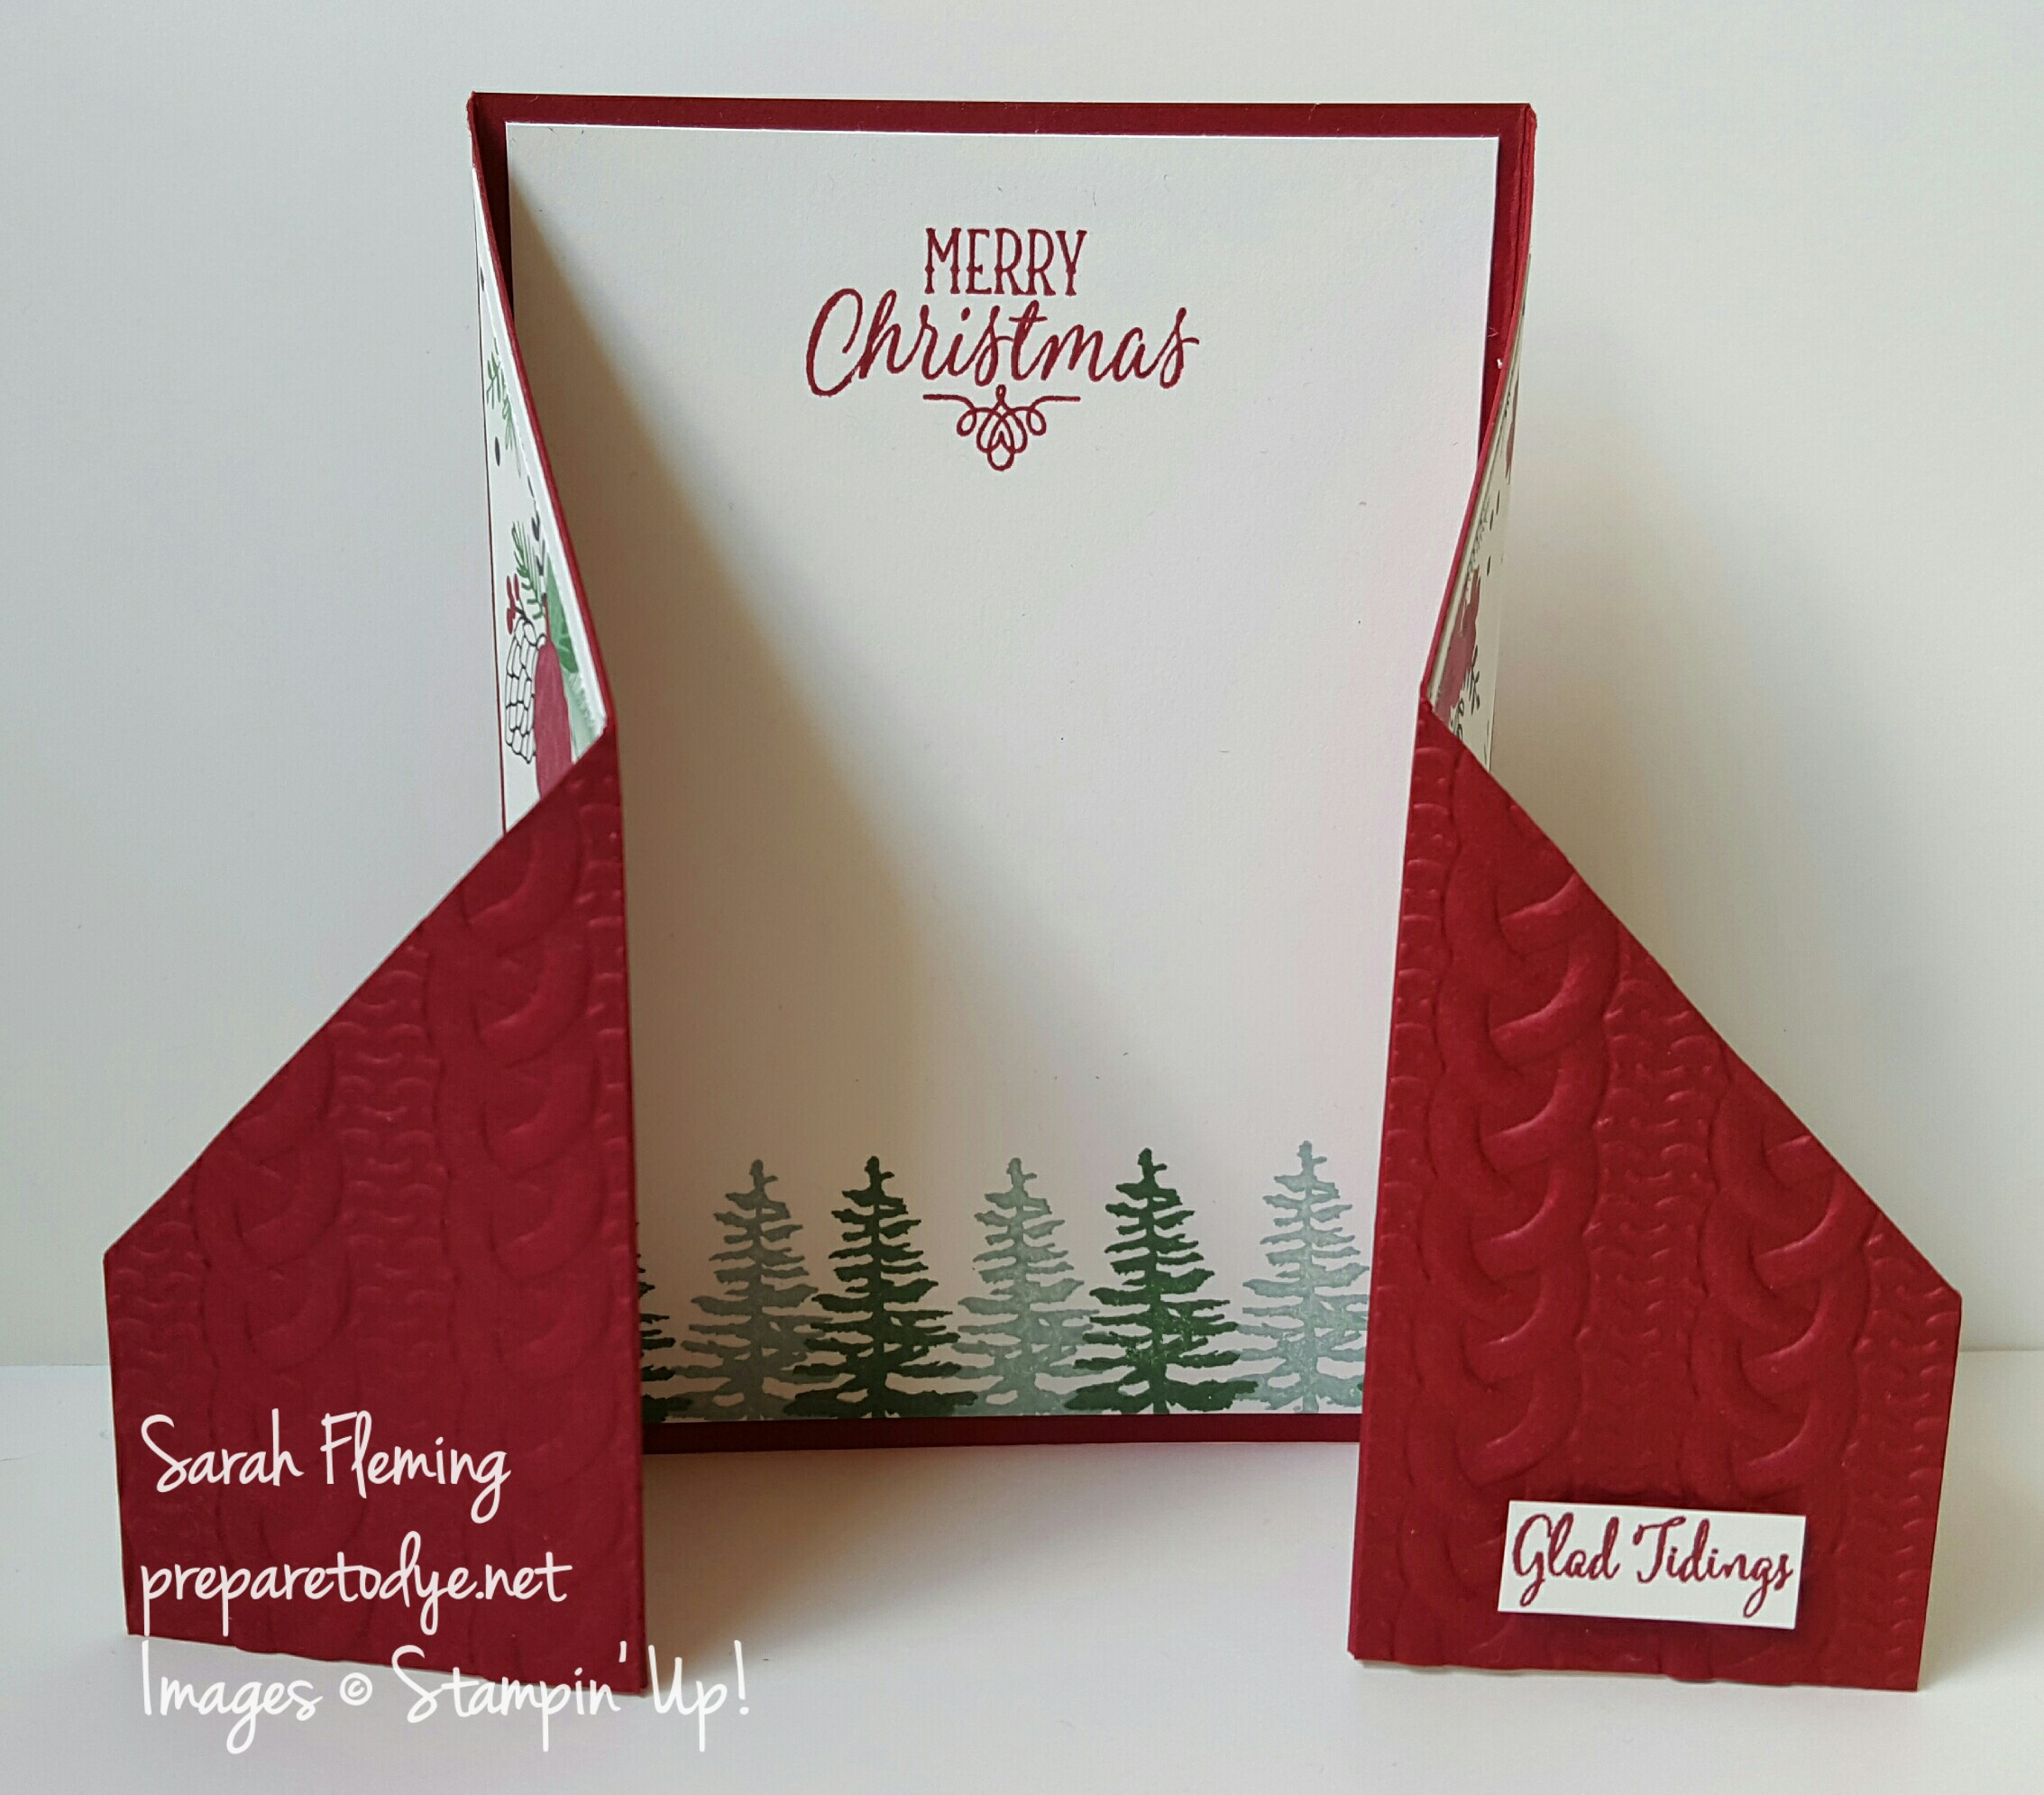 Double gatefold card using Stampin' Up!'s new Festive Season bundle - Sarah Fleming - Prepare to Dye